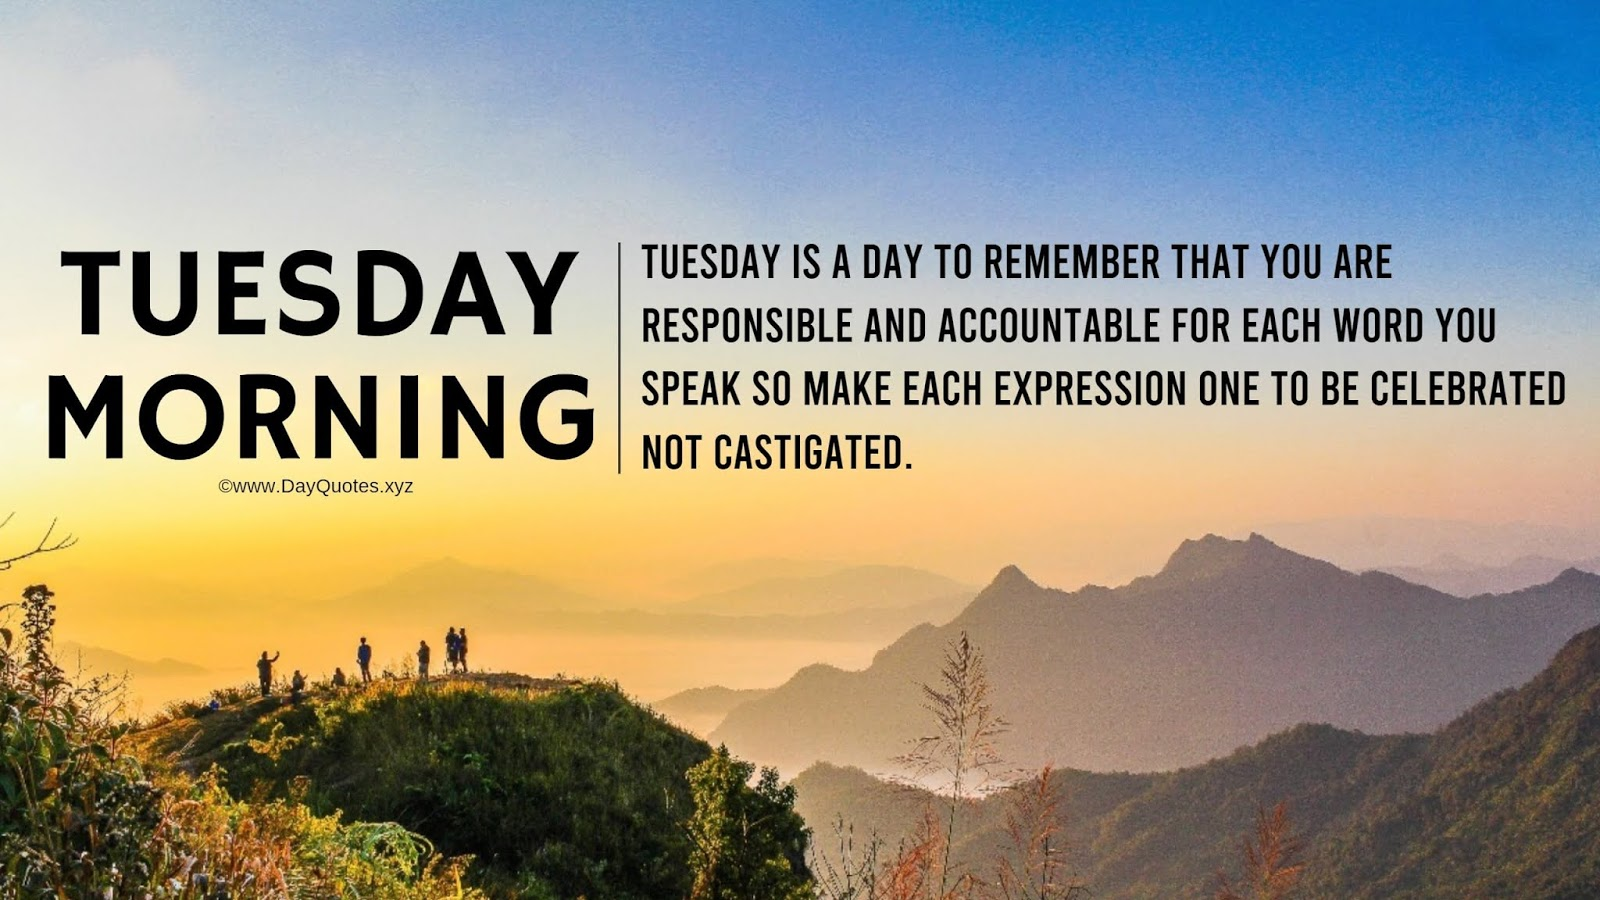 Quotes For Tuesday Morning